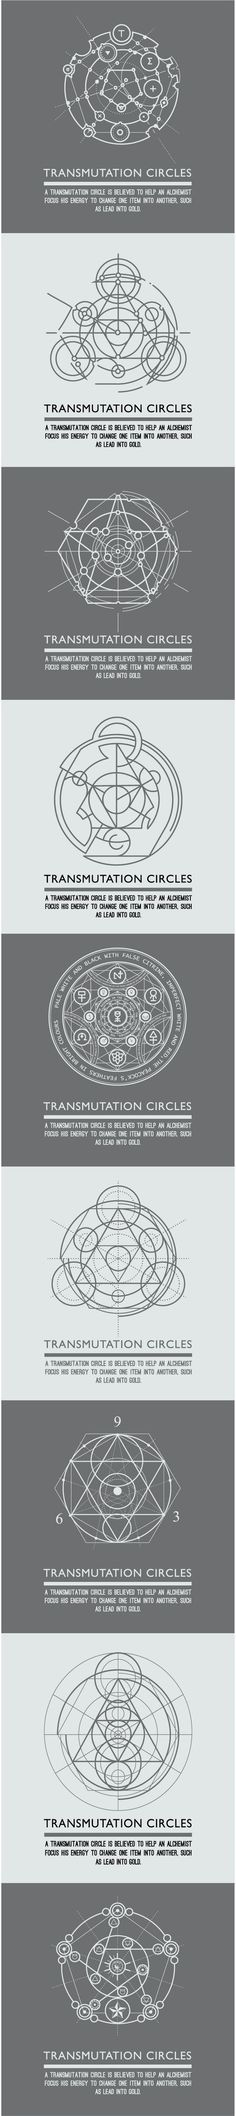 Transmutation circles - alchemical symbol - sacred geometry - can be used in…